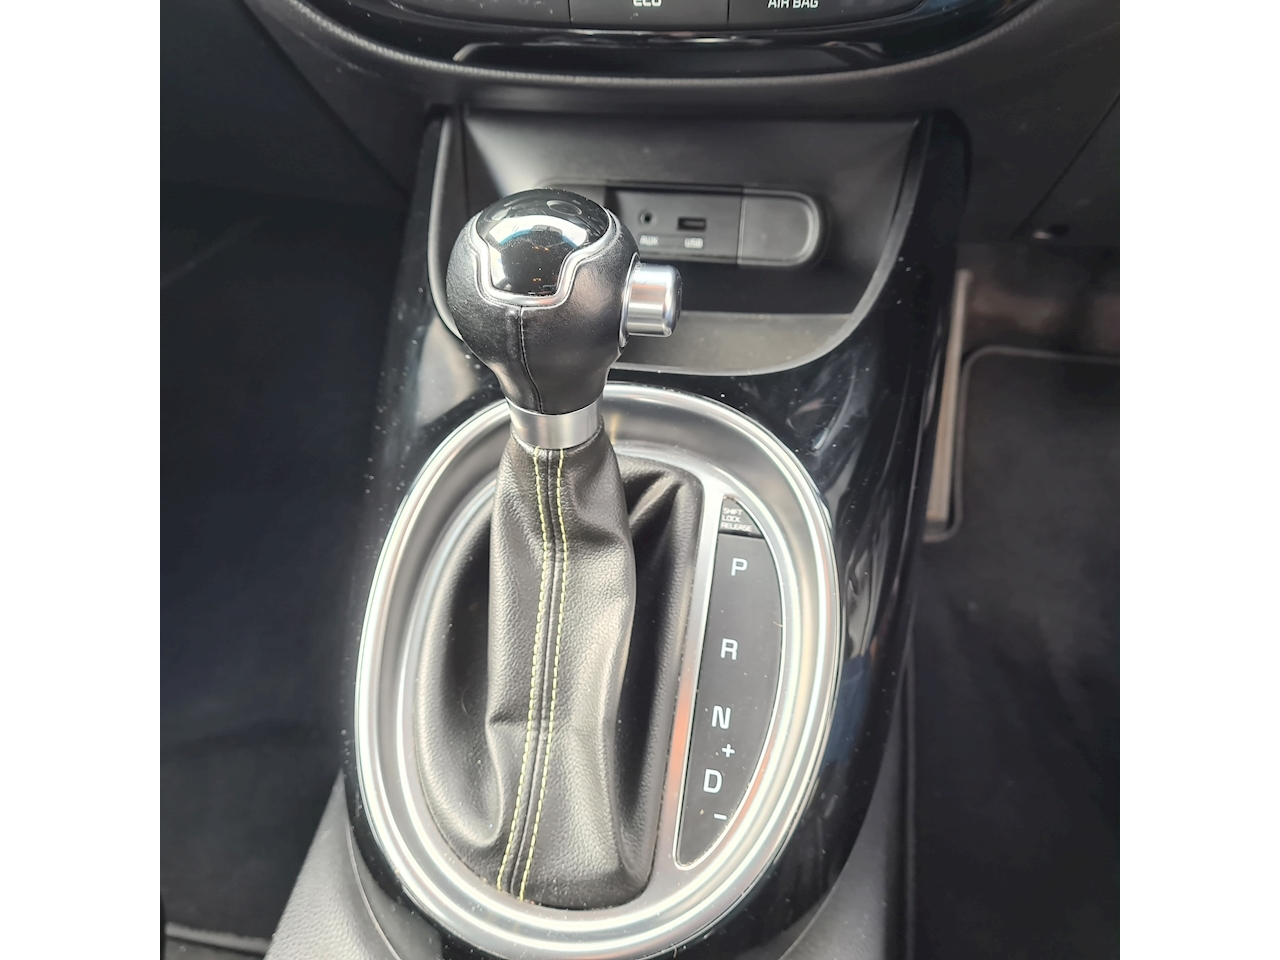 Kia Soul Connect Plus SUV 1.6 Automatic Diesel